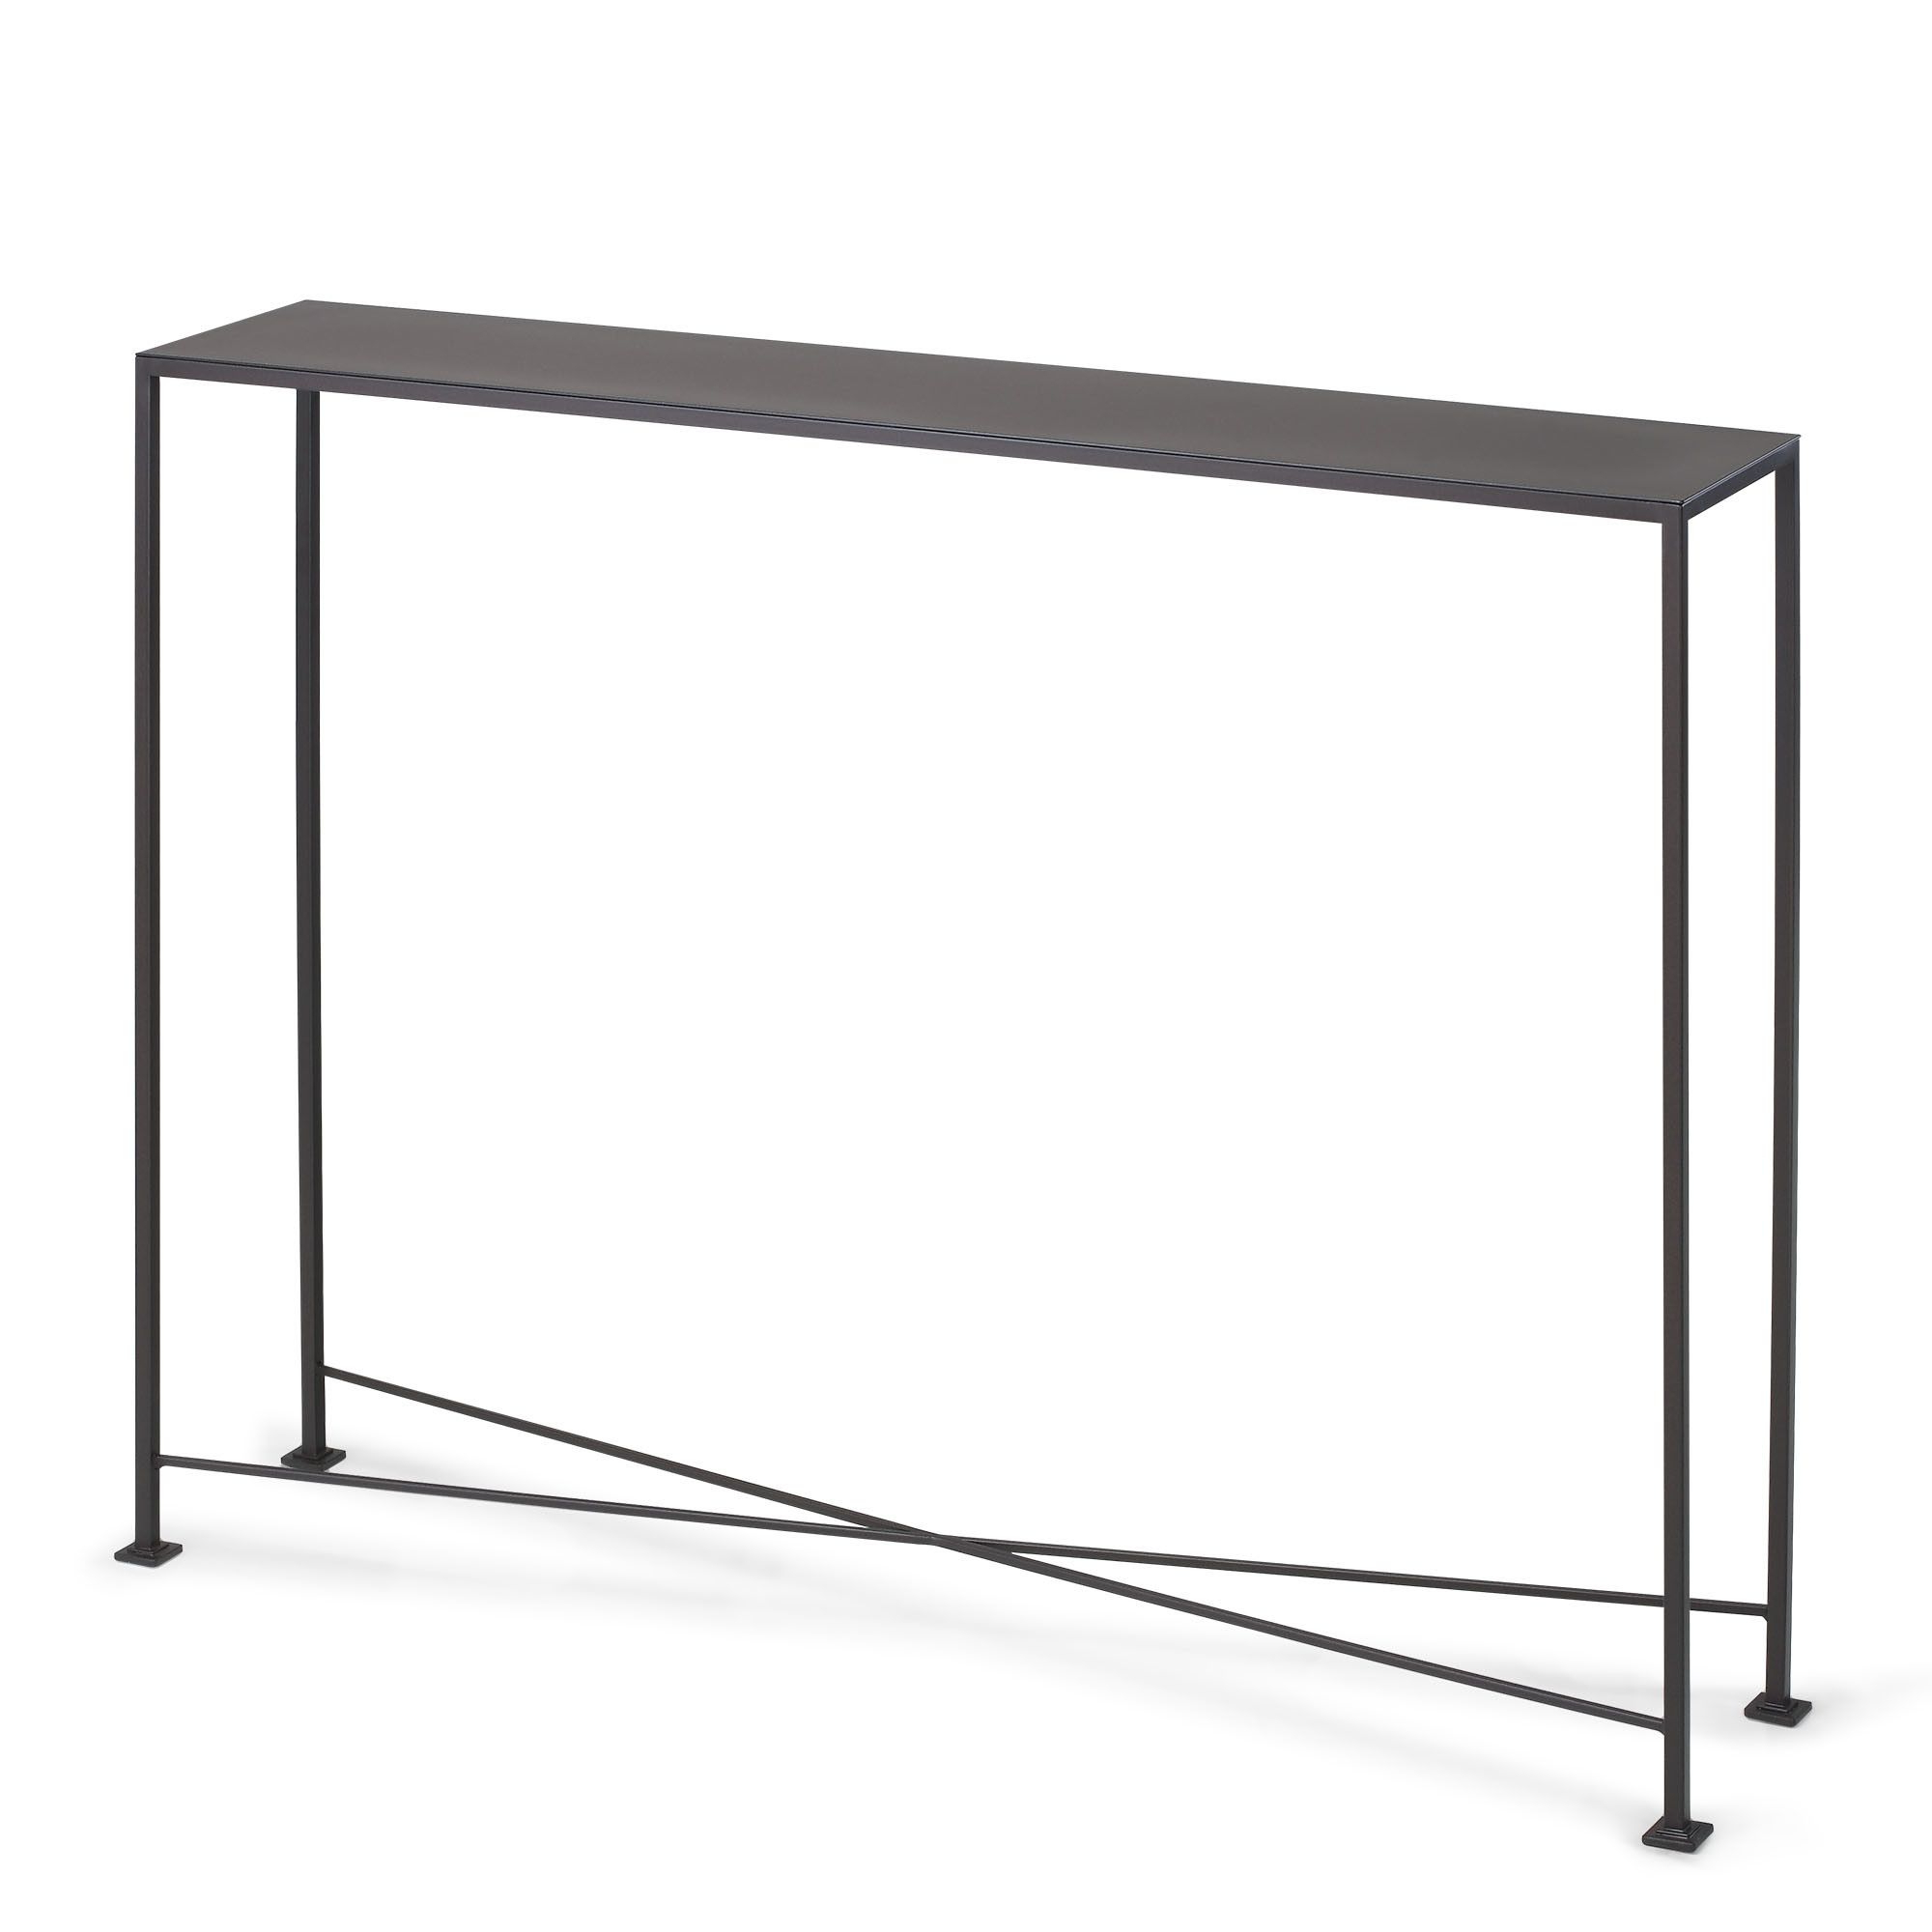 Console Tables, Consoles And Metals Within Popular Silviano 60 Inch Iron Console Tables (View 5 of 20)